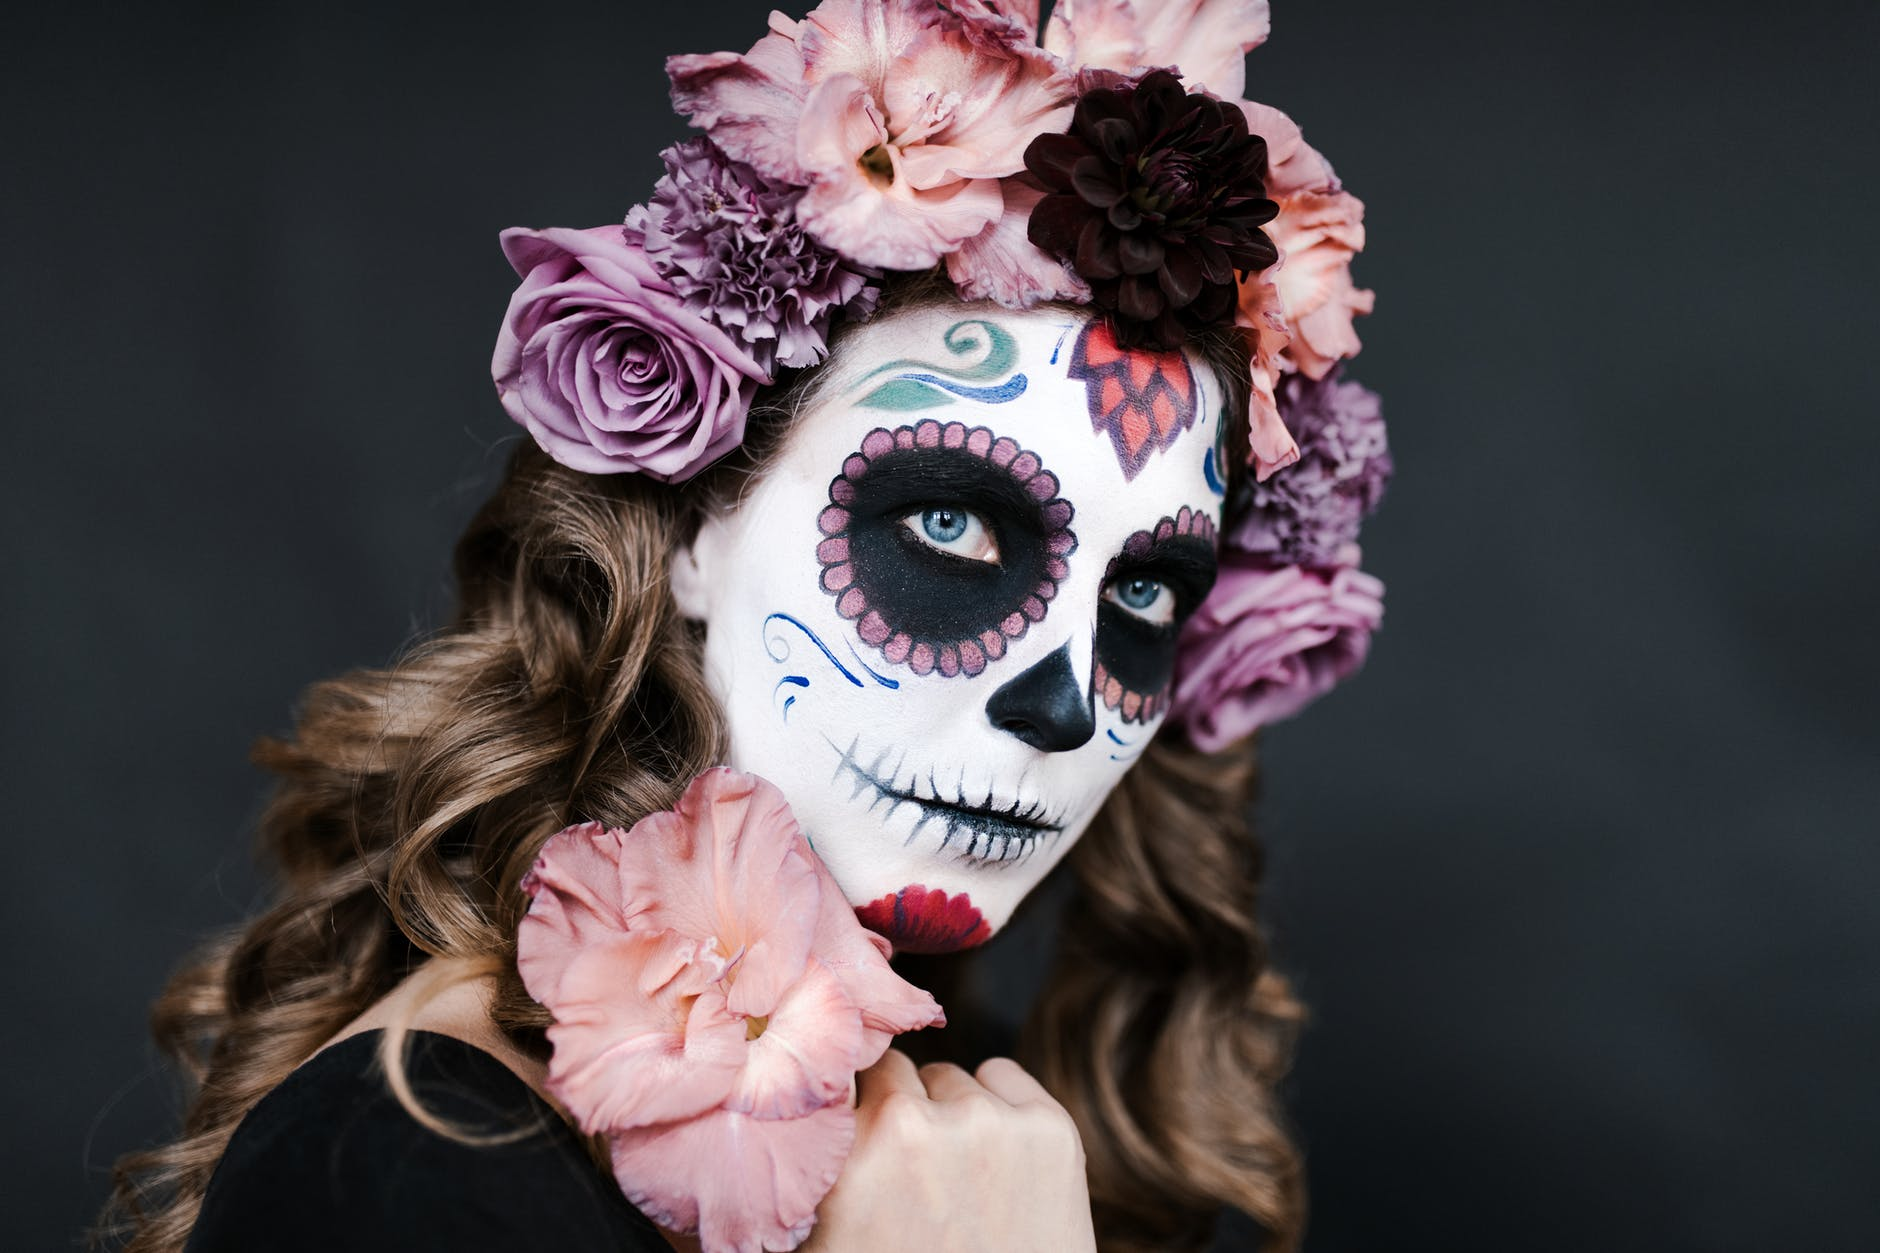 woman with candy skull visage for day of dead